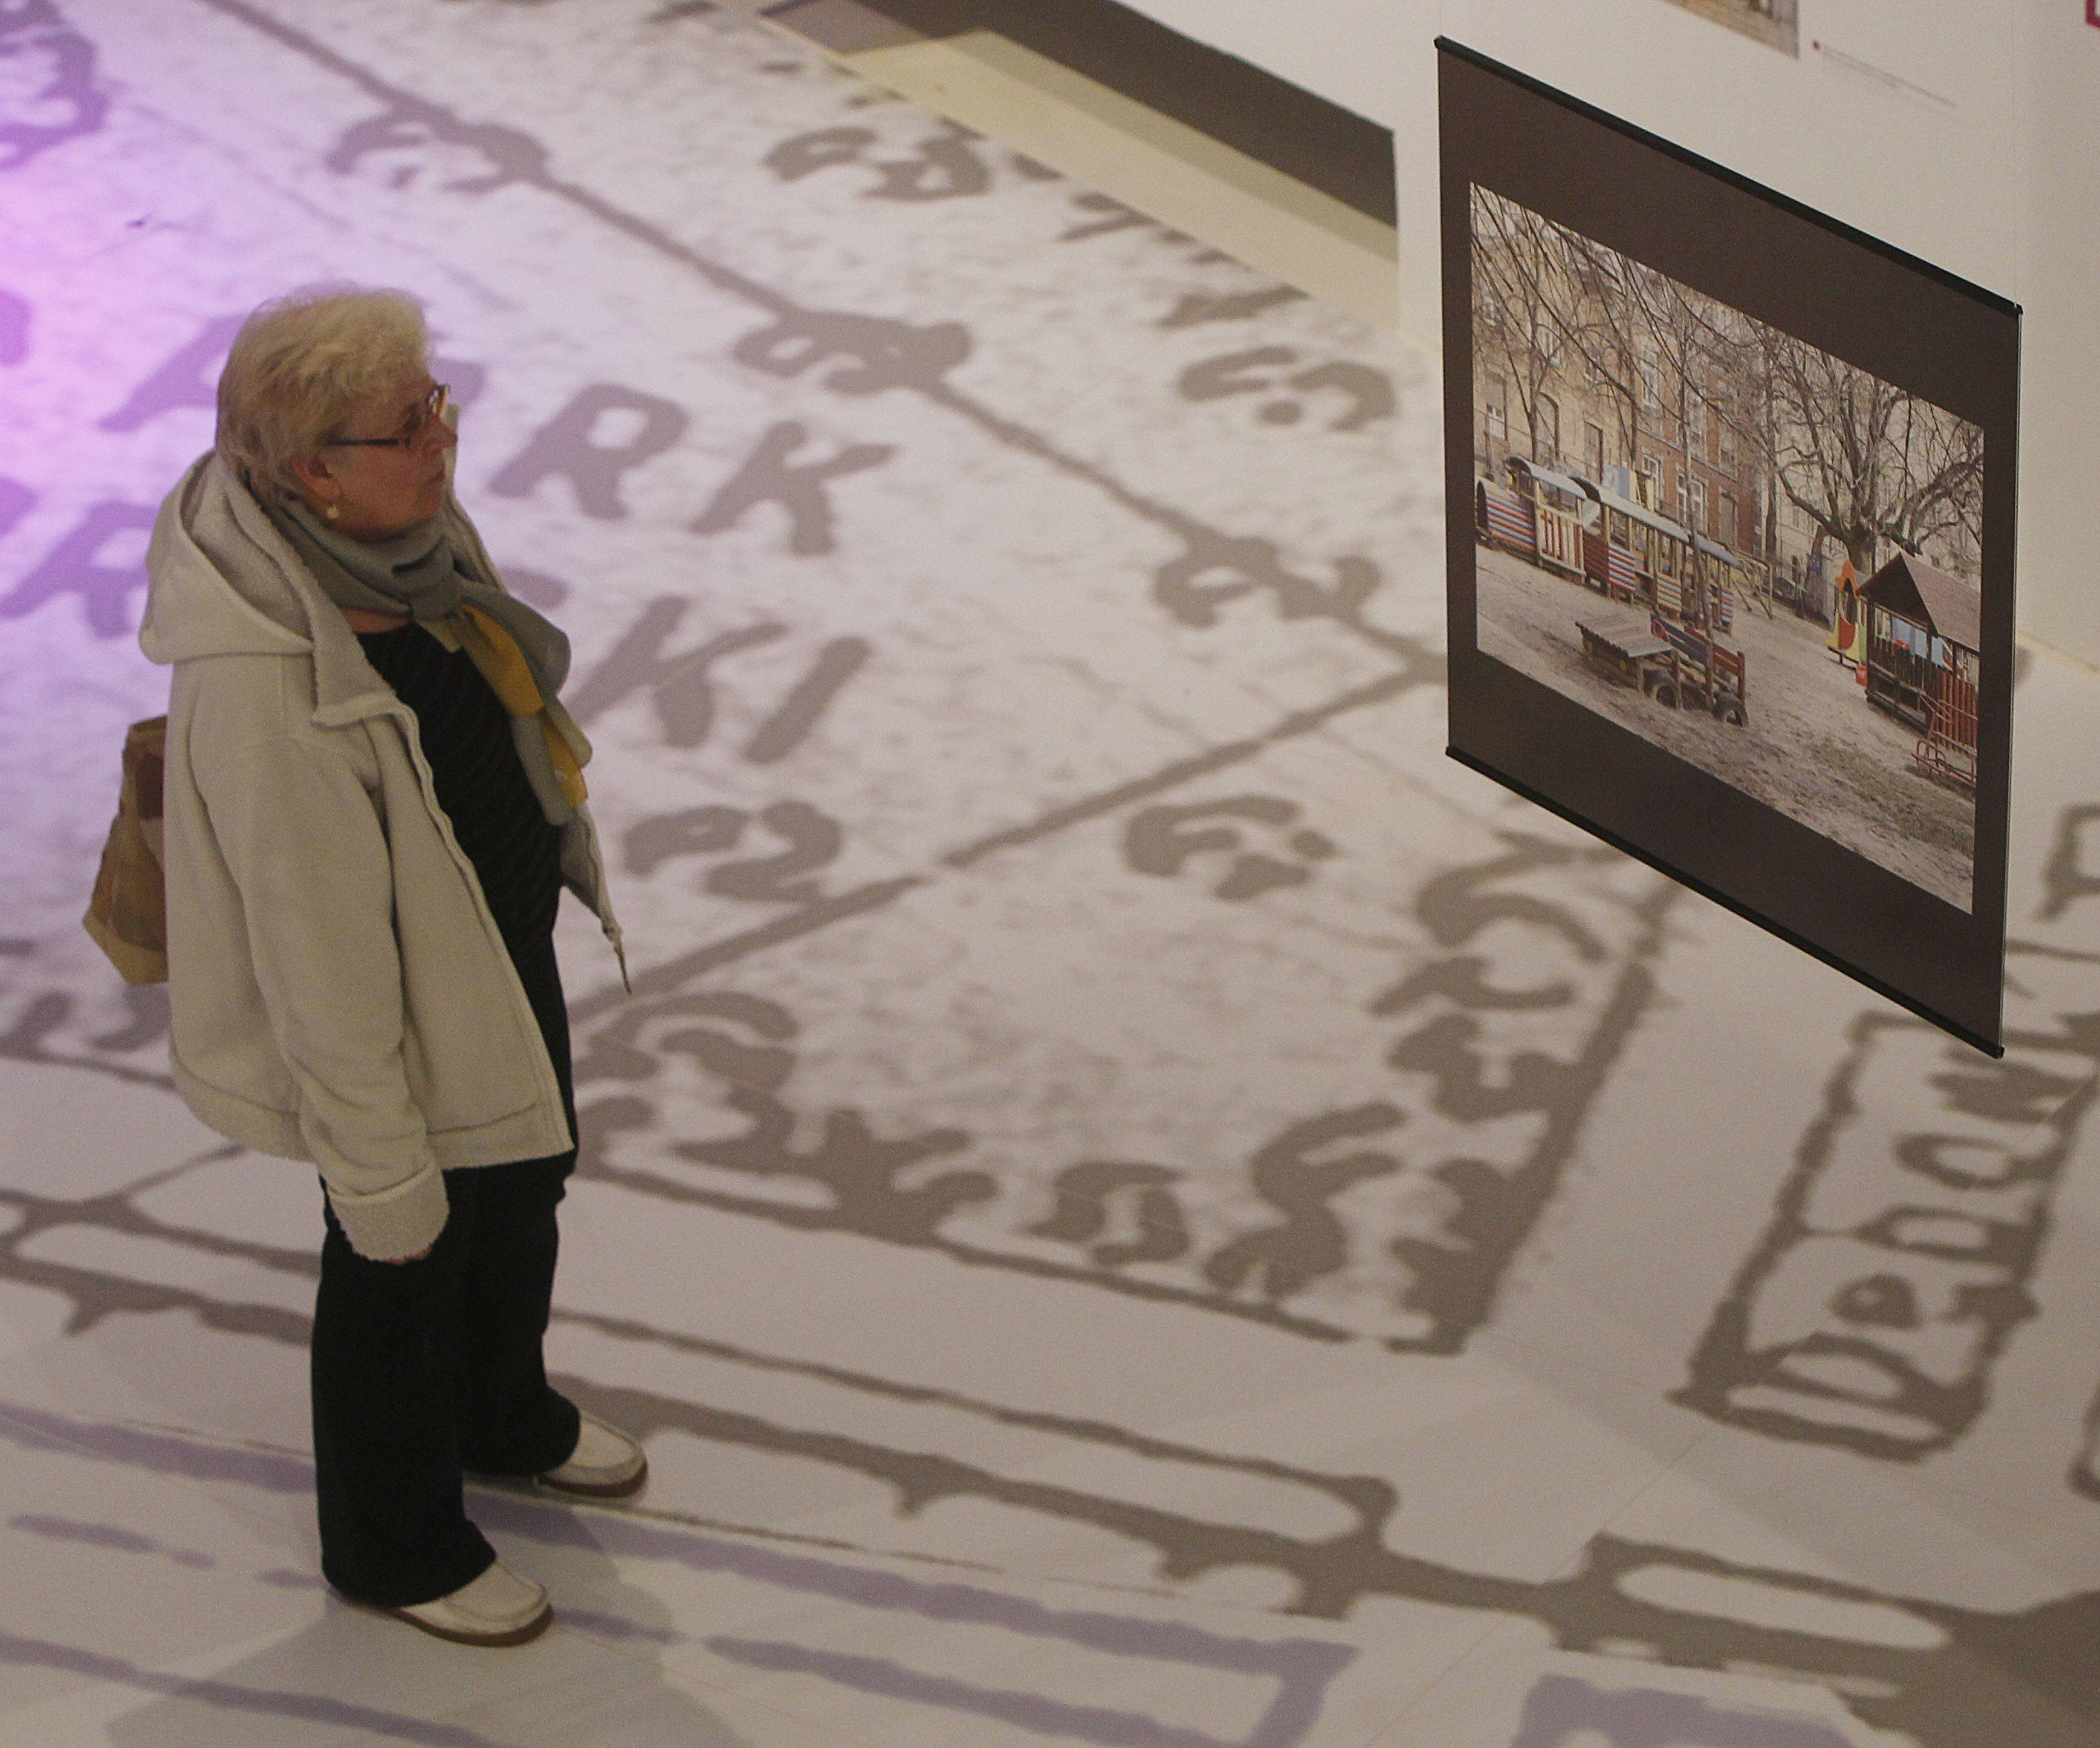 A visitor looks at a contemporary image of a site that used to be part of the Jewish district in pre-World War II Warsaw.